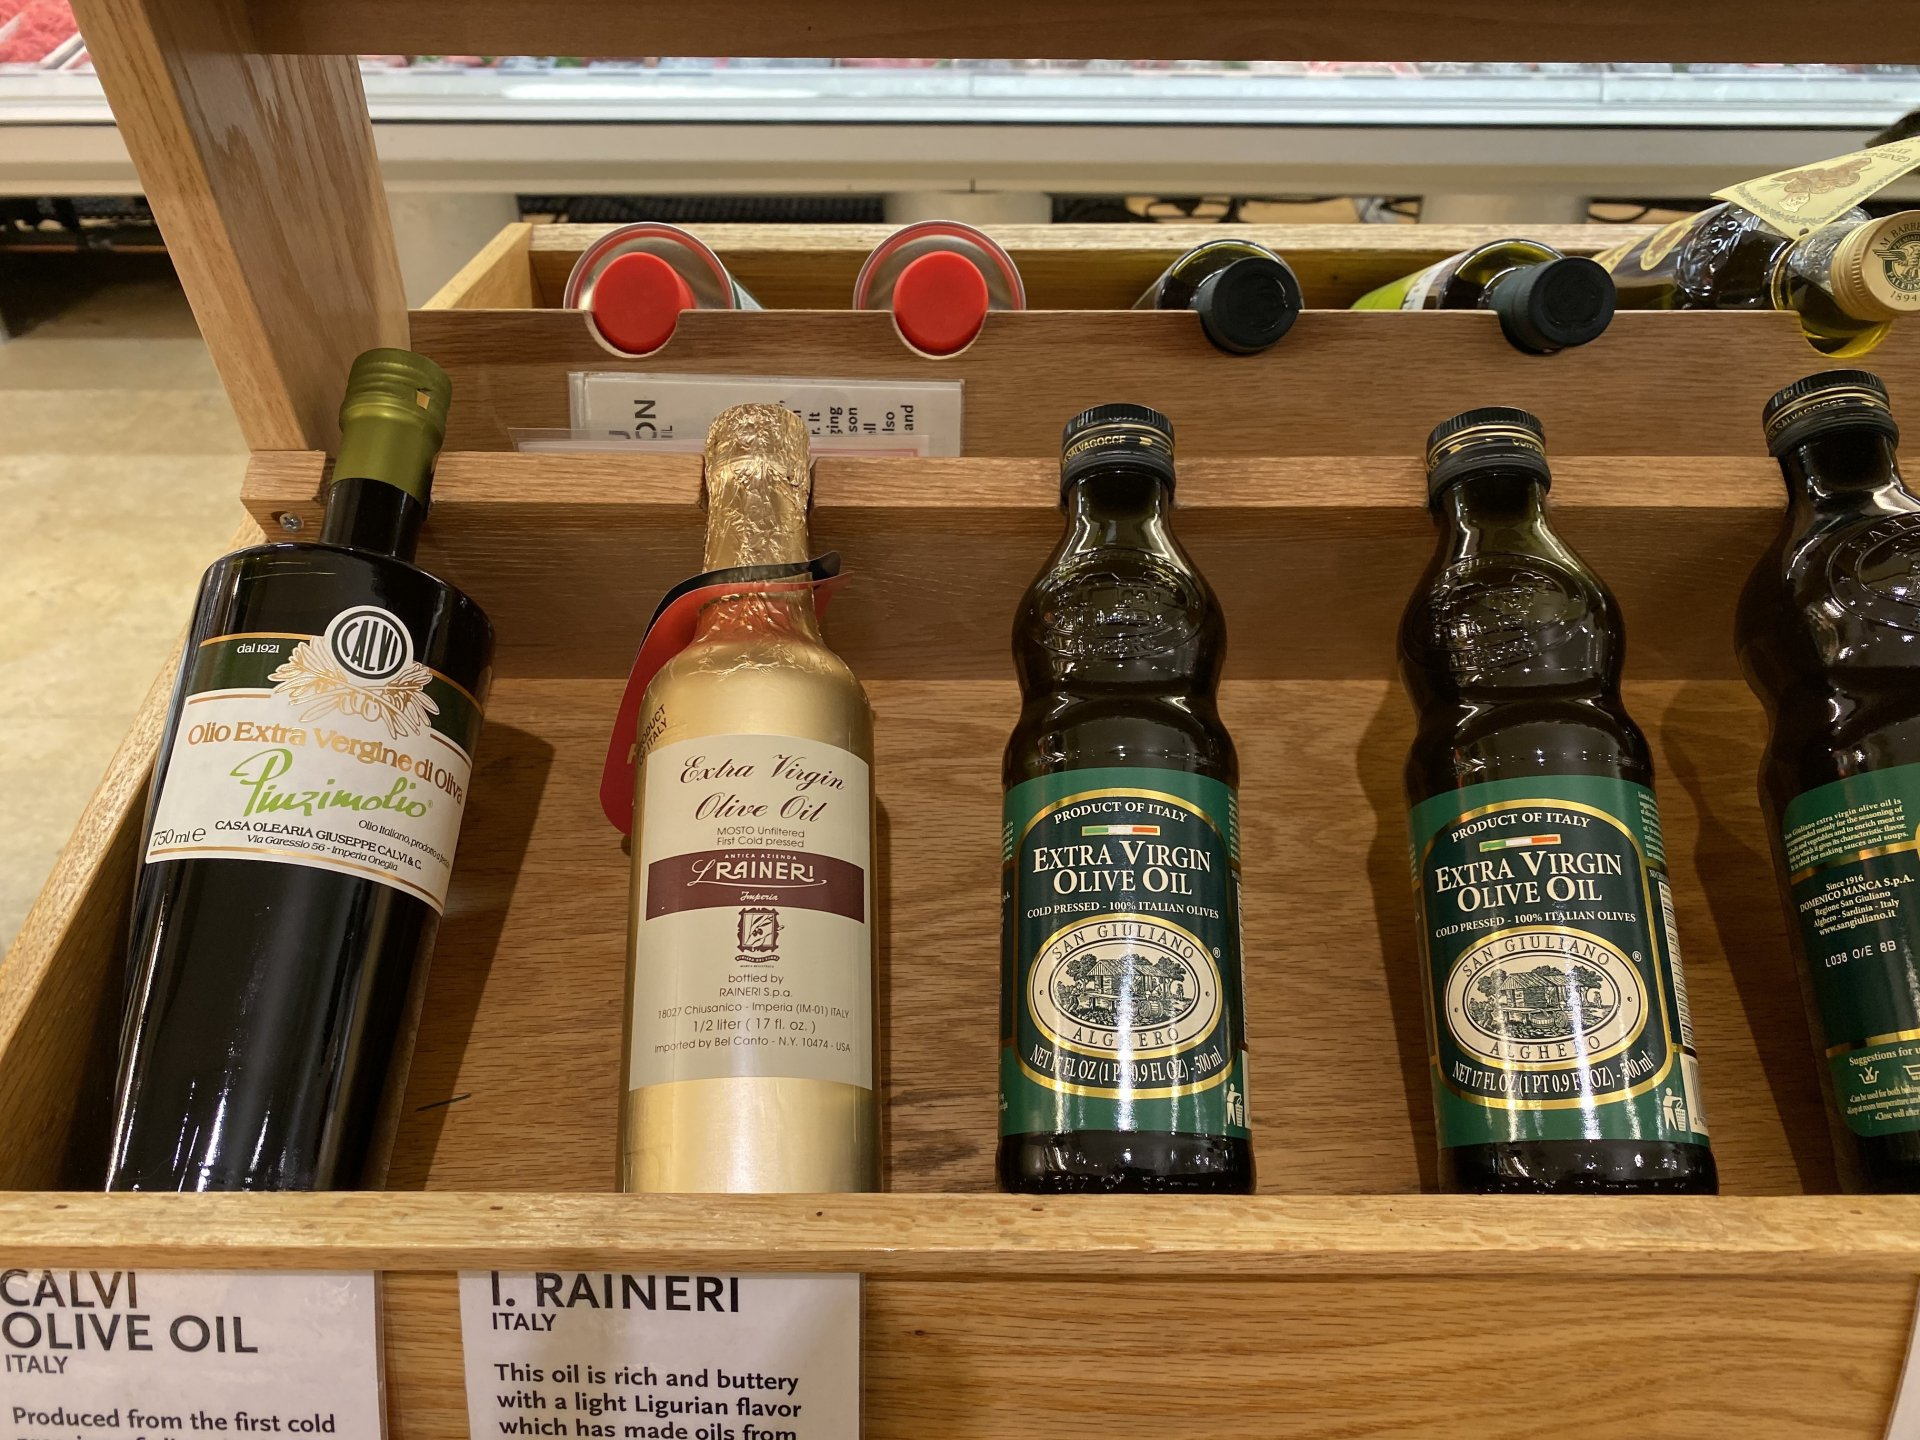 Olive Oil stocked in Italy. Update of 4 June 2020